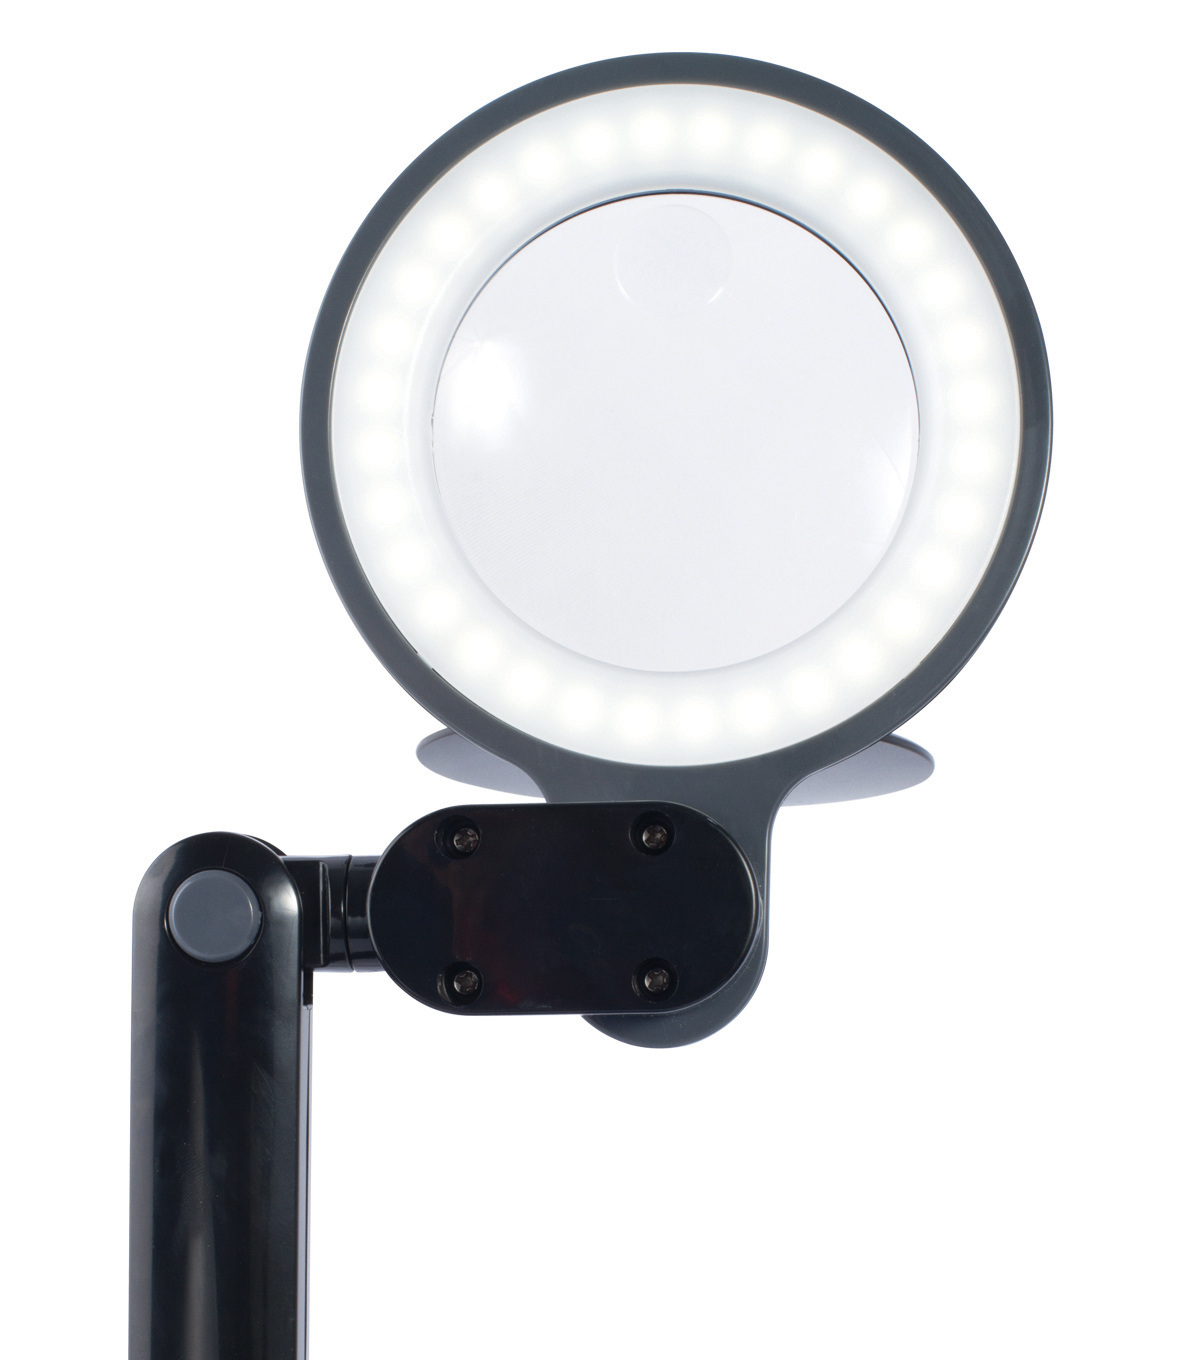 Saving Lamp Desk Magnifier Space Black Ottlite Led 8nwPX0Ok